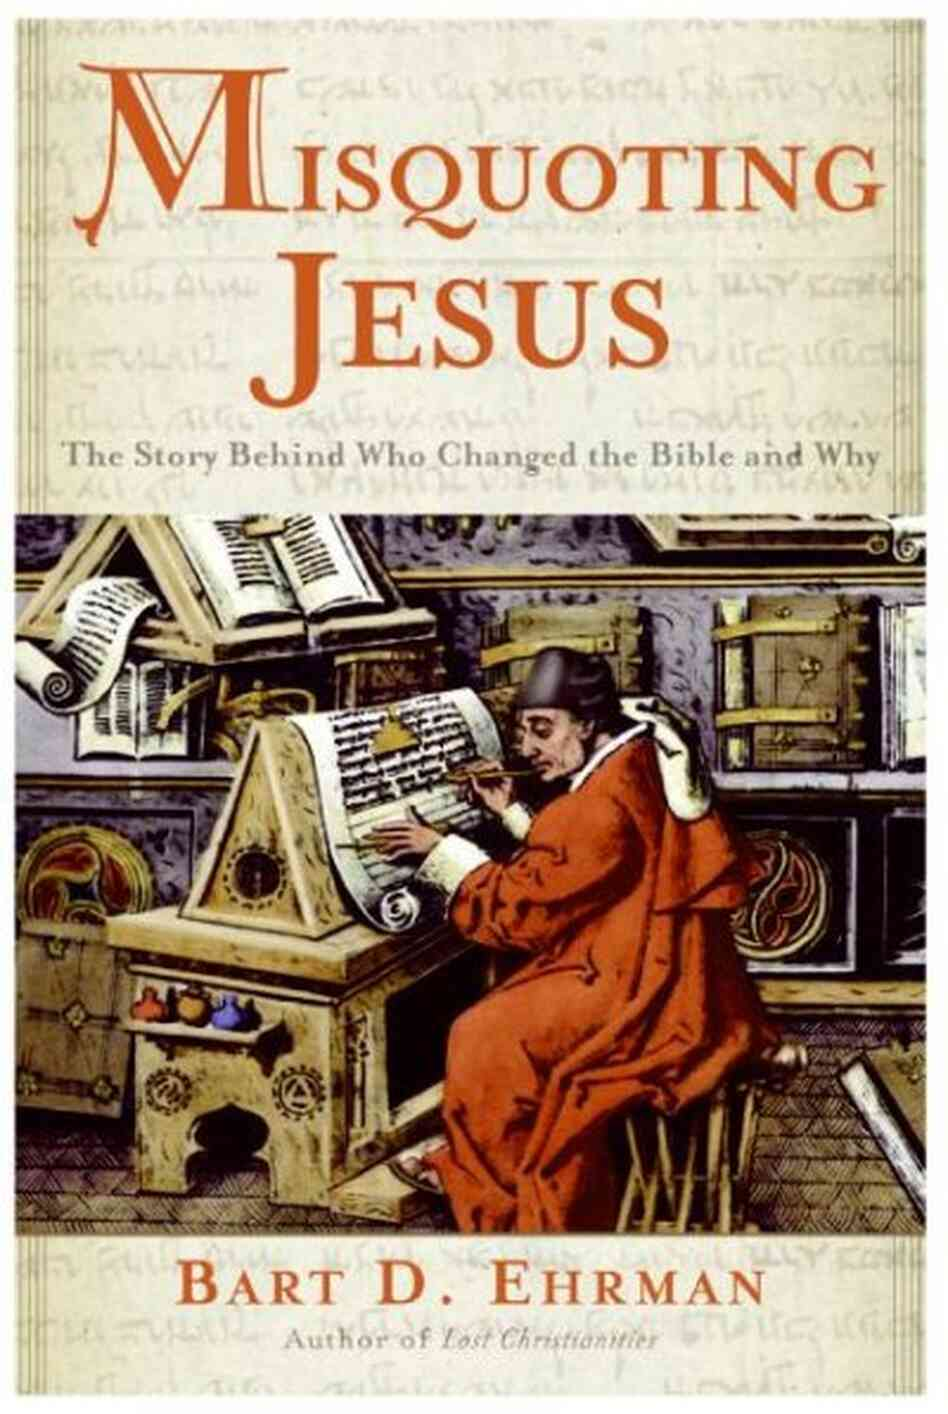 Misquoting Jesus: The Story Behind Who Changed the Bible and Why Bart D. Ehrman